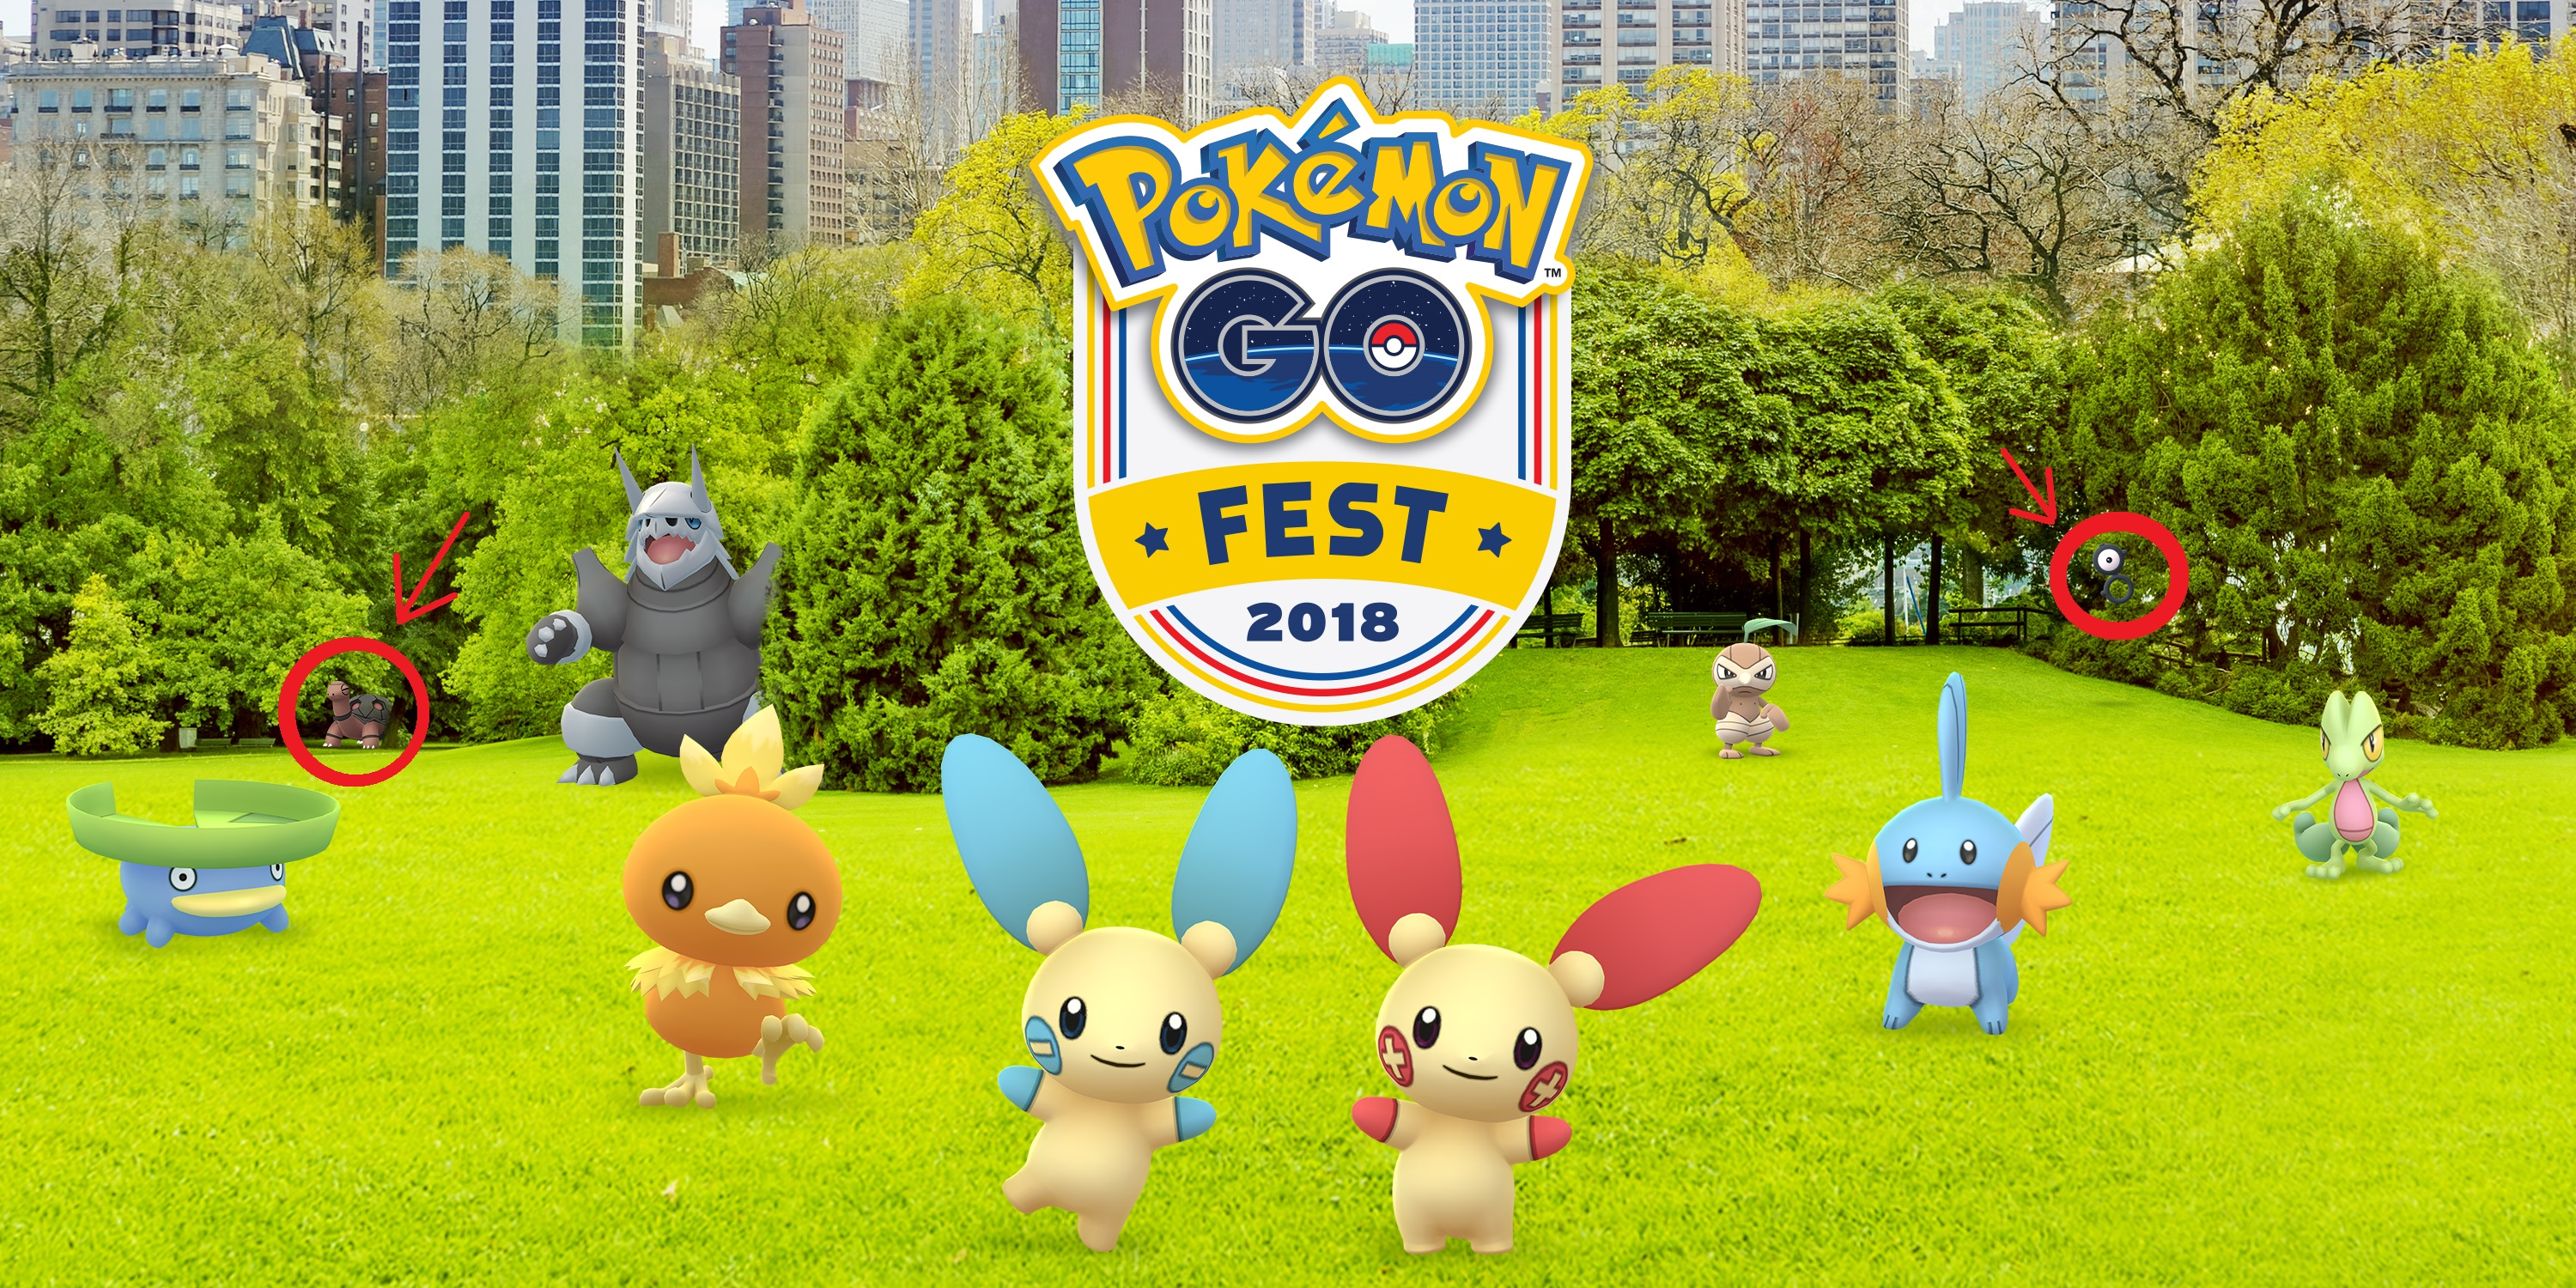 Photo of Pokemon Go Fest 2018: A Walk in the Park details, Tickets, Quests, Special Events and More